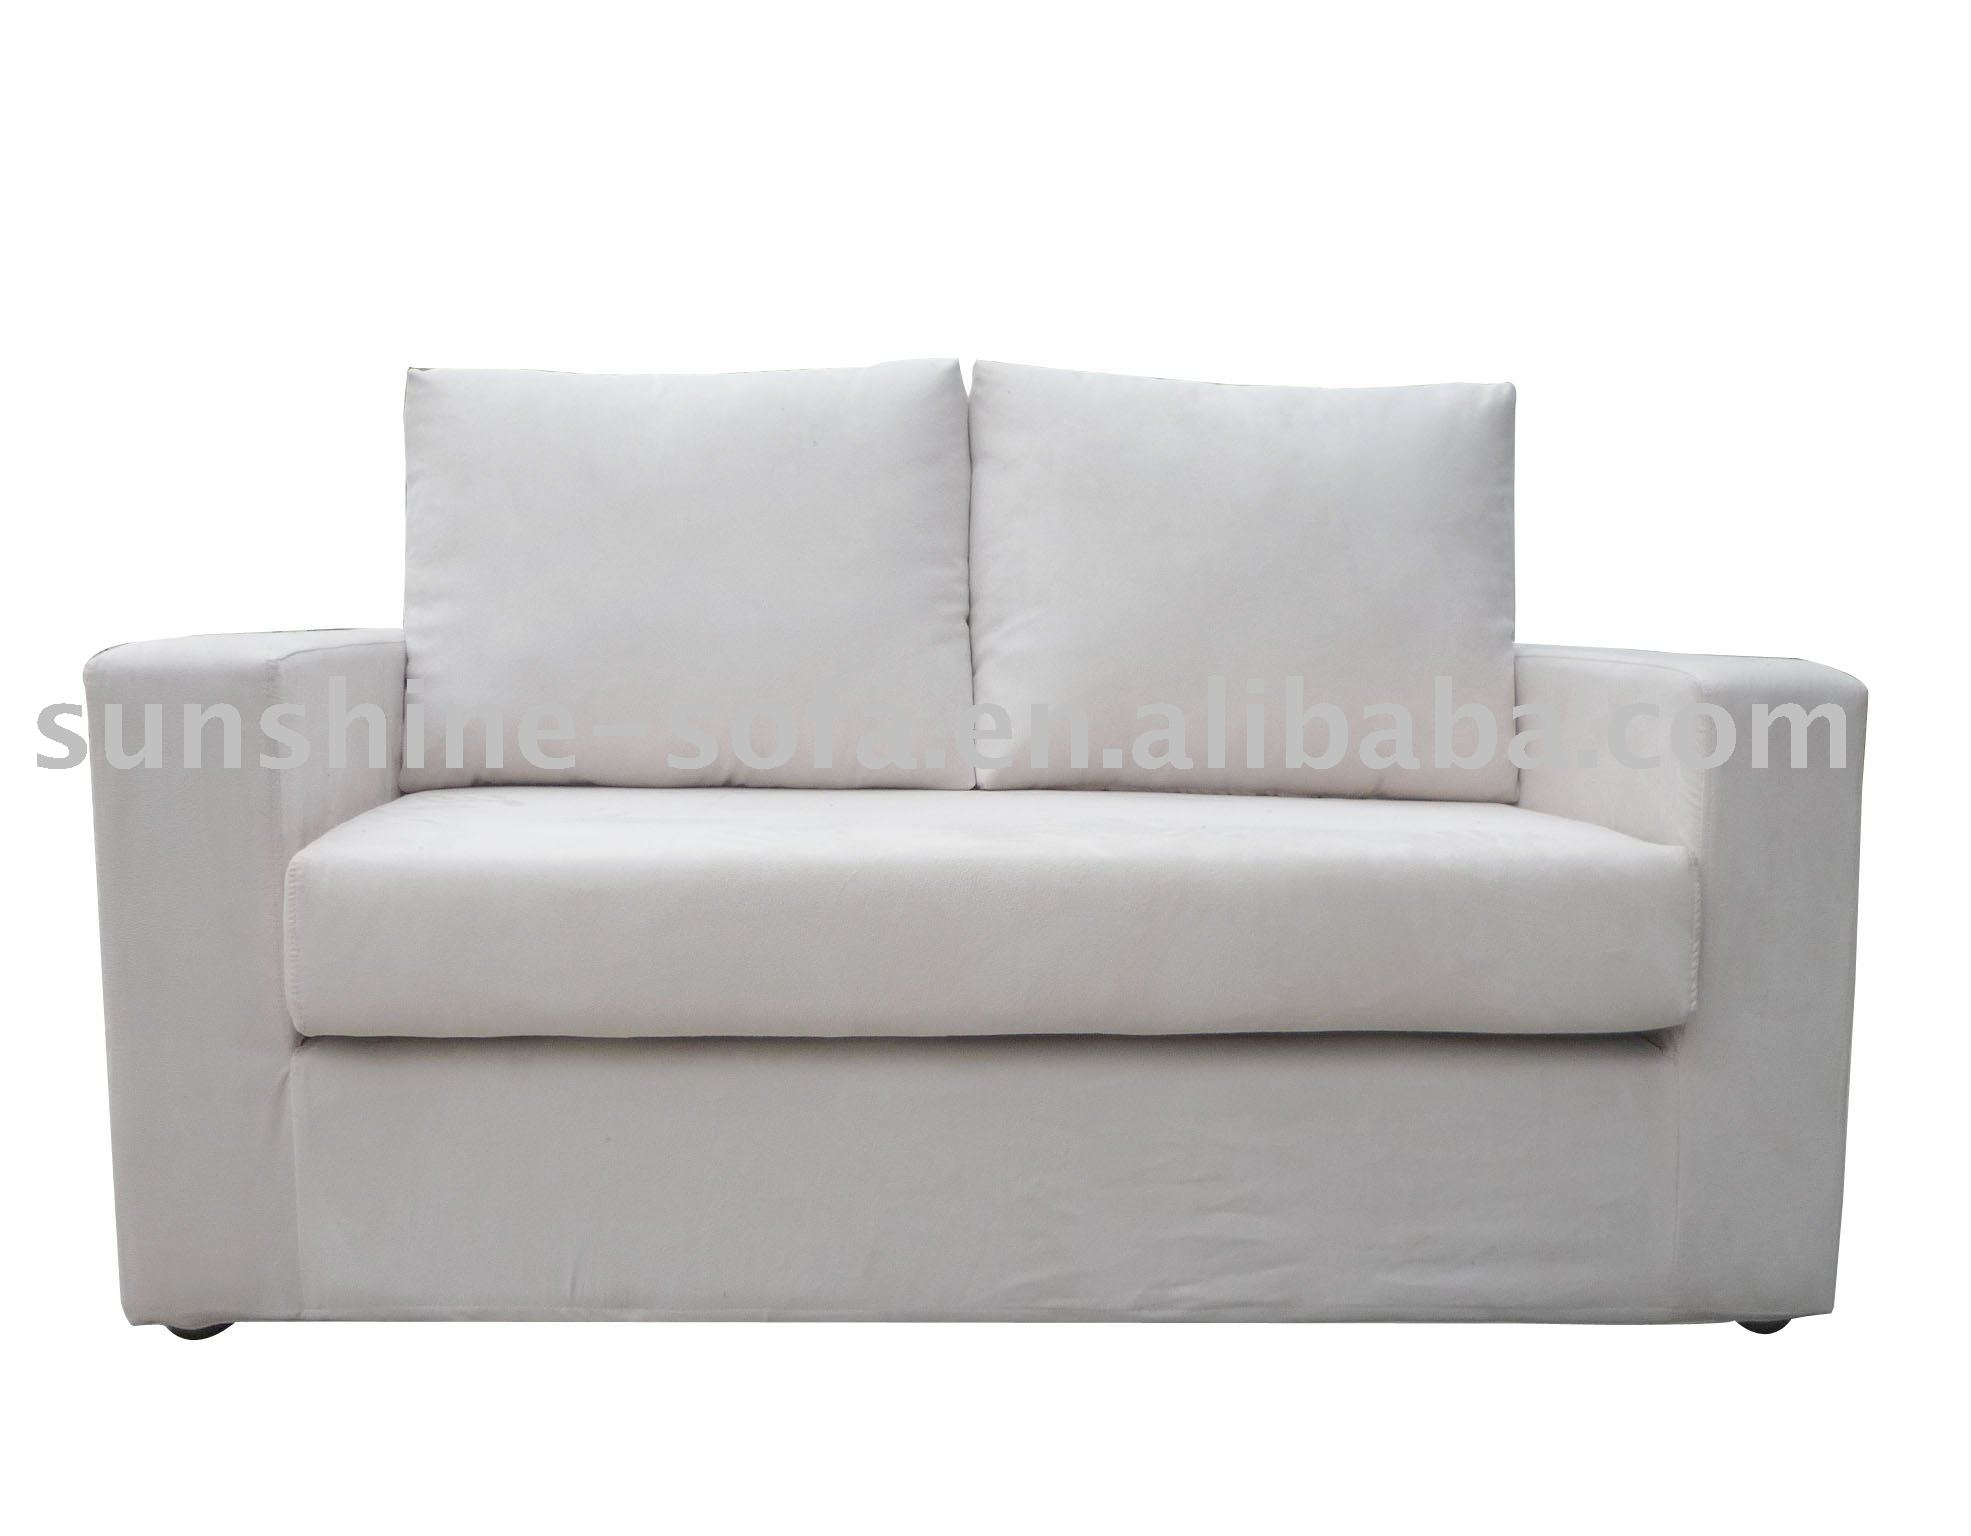 Wooden Double Seaters Leisure Fabric Sofa Bed Buy Double